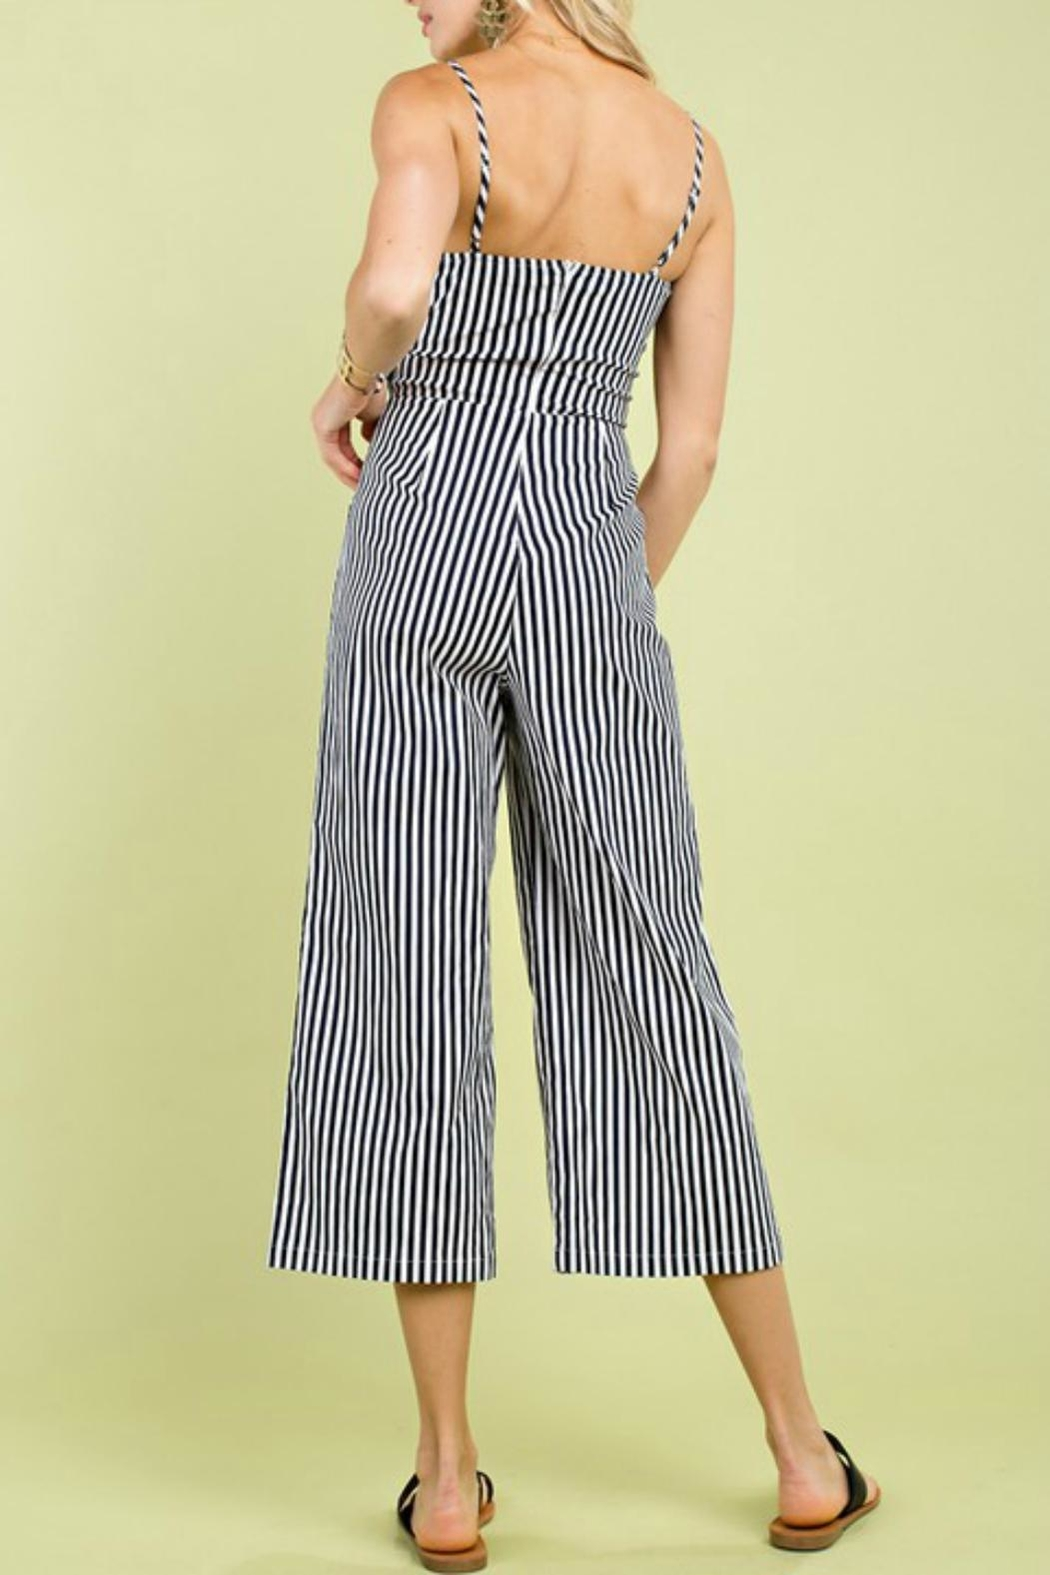 Pretty Little Things Ribbon Tie Jumpsuit - Front Full Image